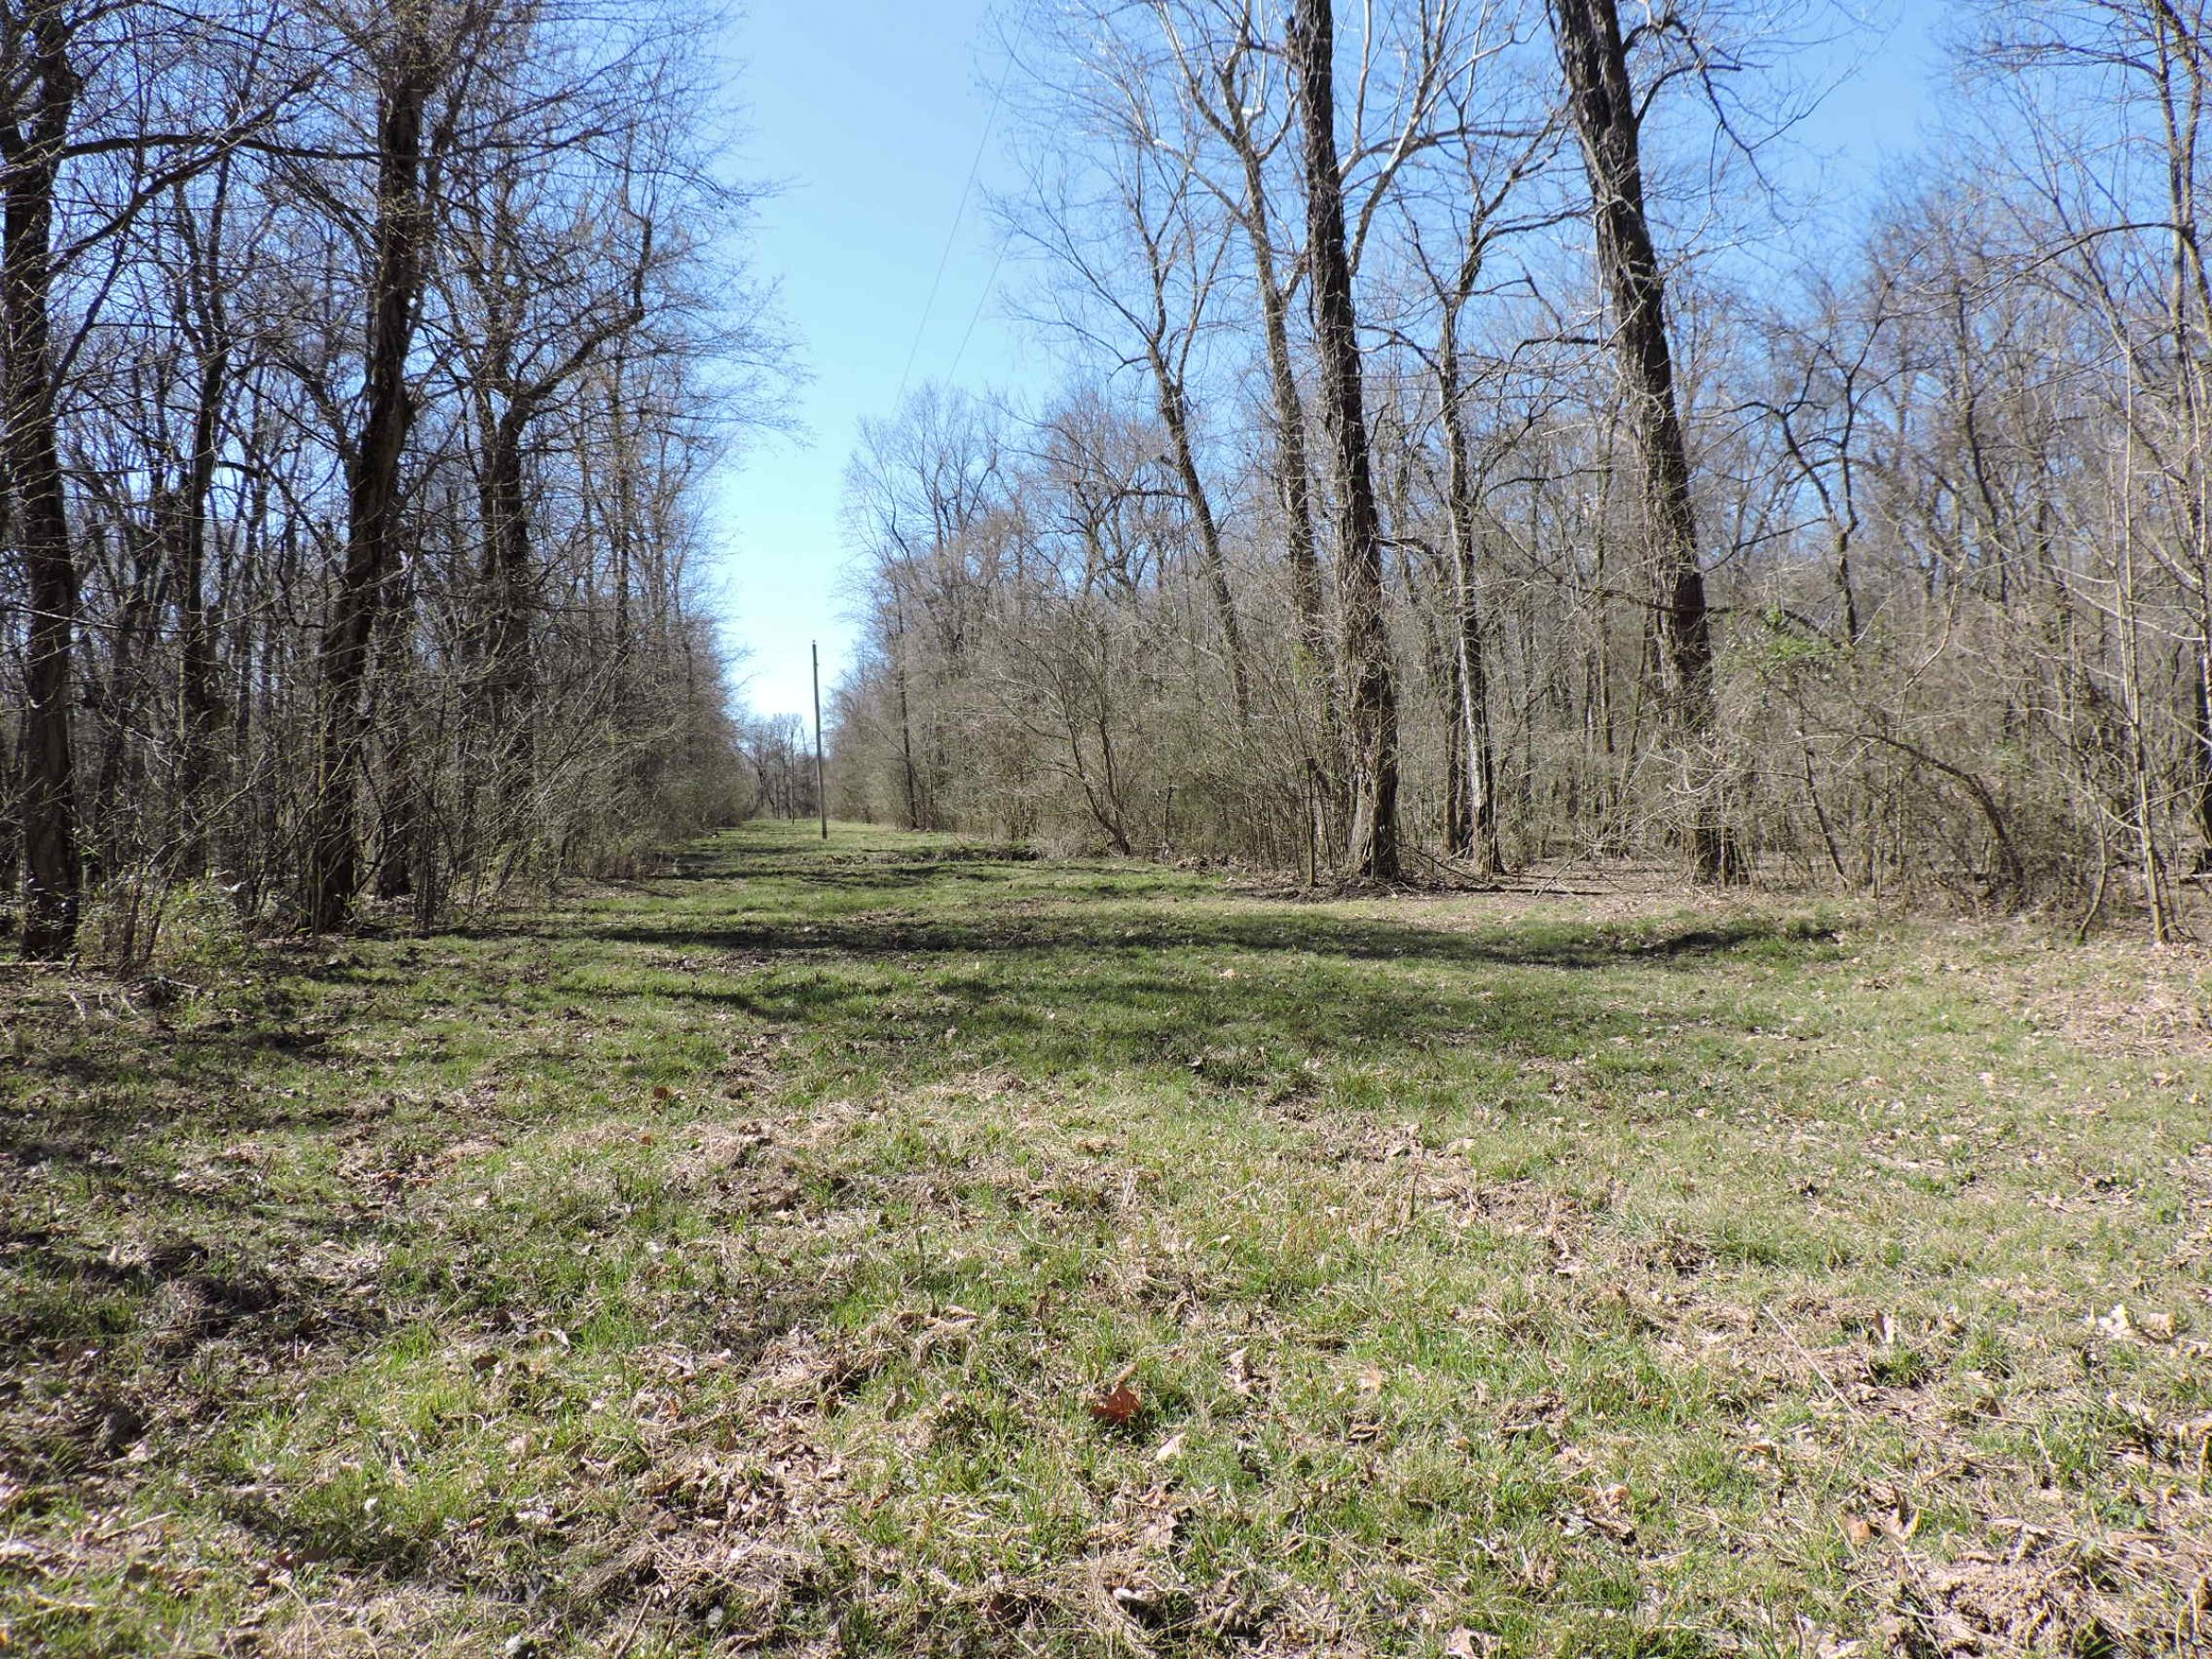 lawrence-county-arkansas-180-acres-listing-number-15014-7-2020-05-28-210443.JPG